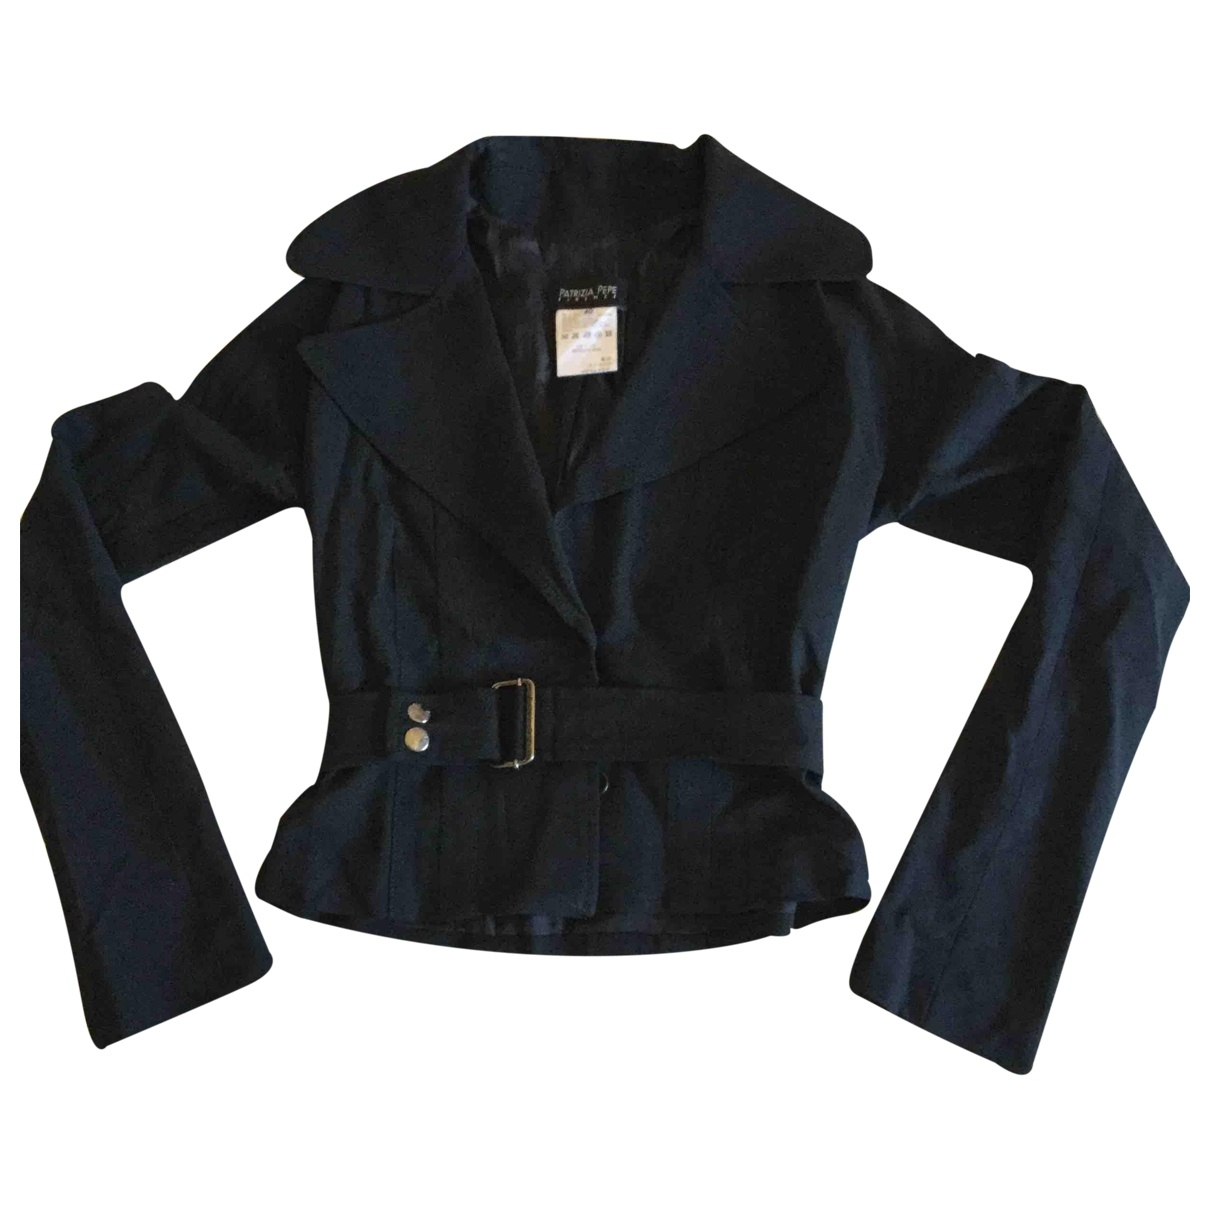 Patrizia Pepe \N Black Wool jacket for Women 40 IT